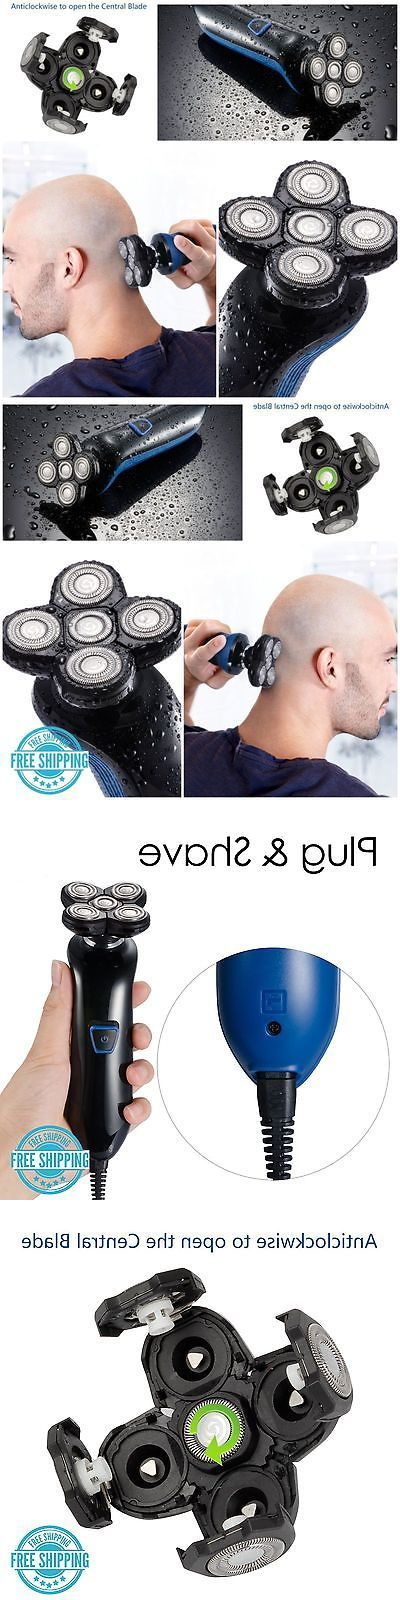 Mens Shavers: Bald Head Shavers For Men Smart Best Shaver Smooth Skull Cord Cordless Wet Dry -> BUY IT NOW ONLY: $101.79 on eBay!